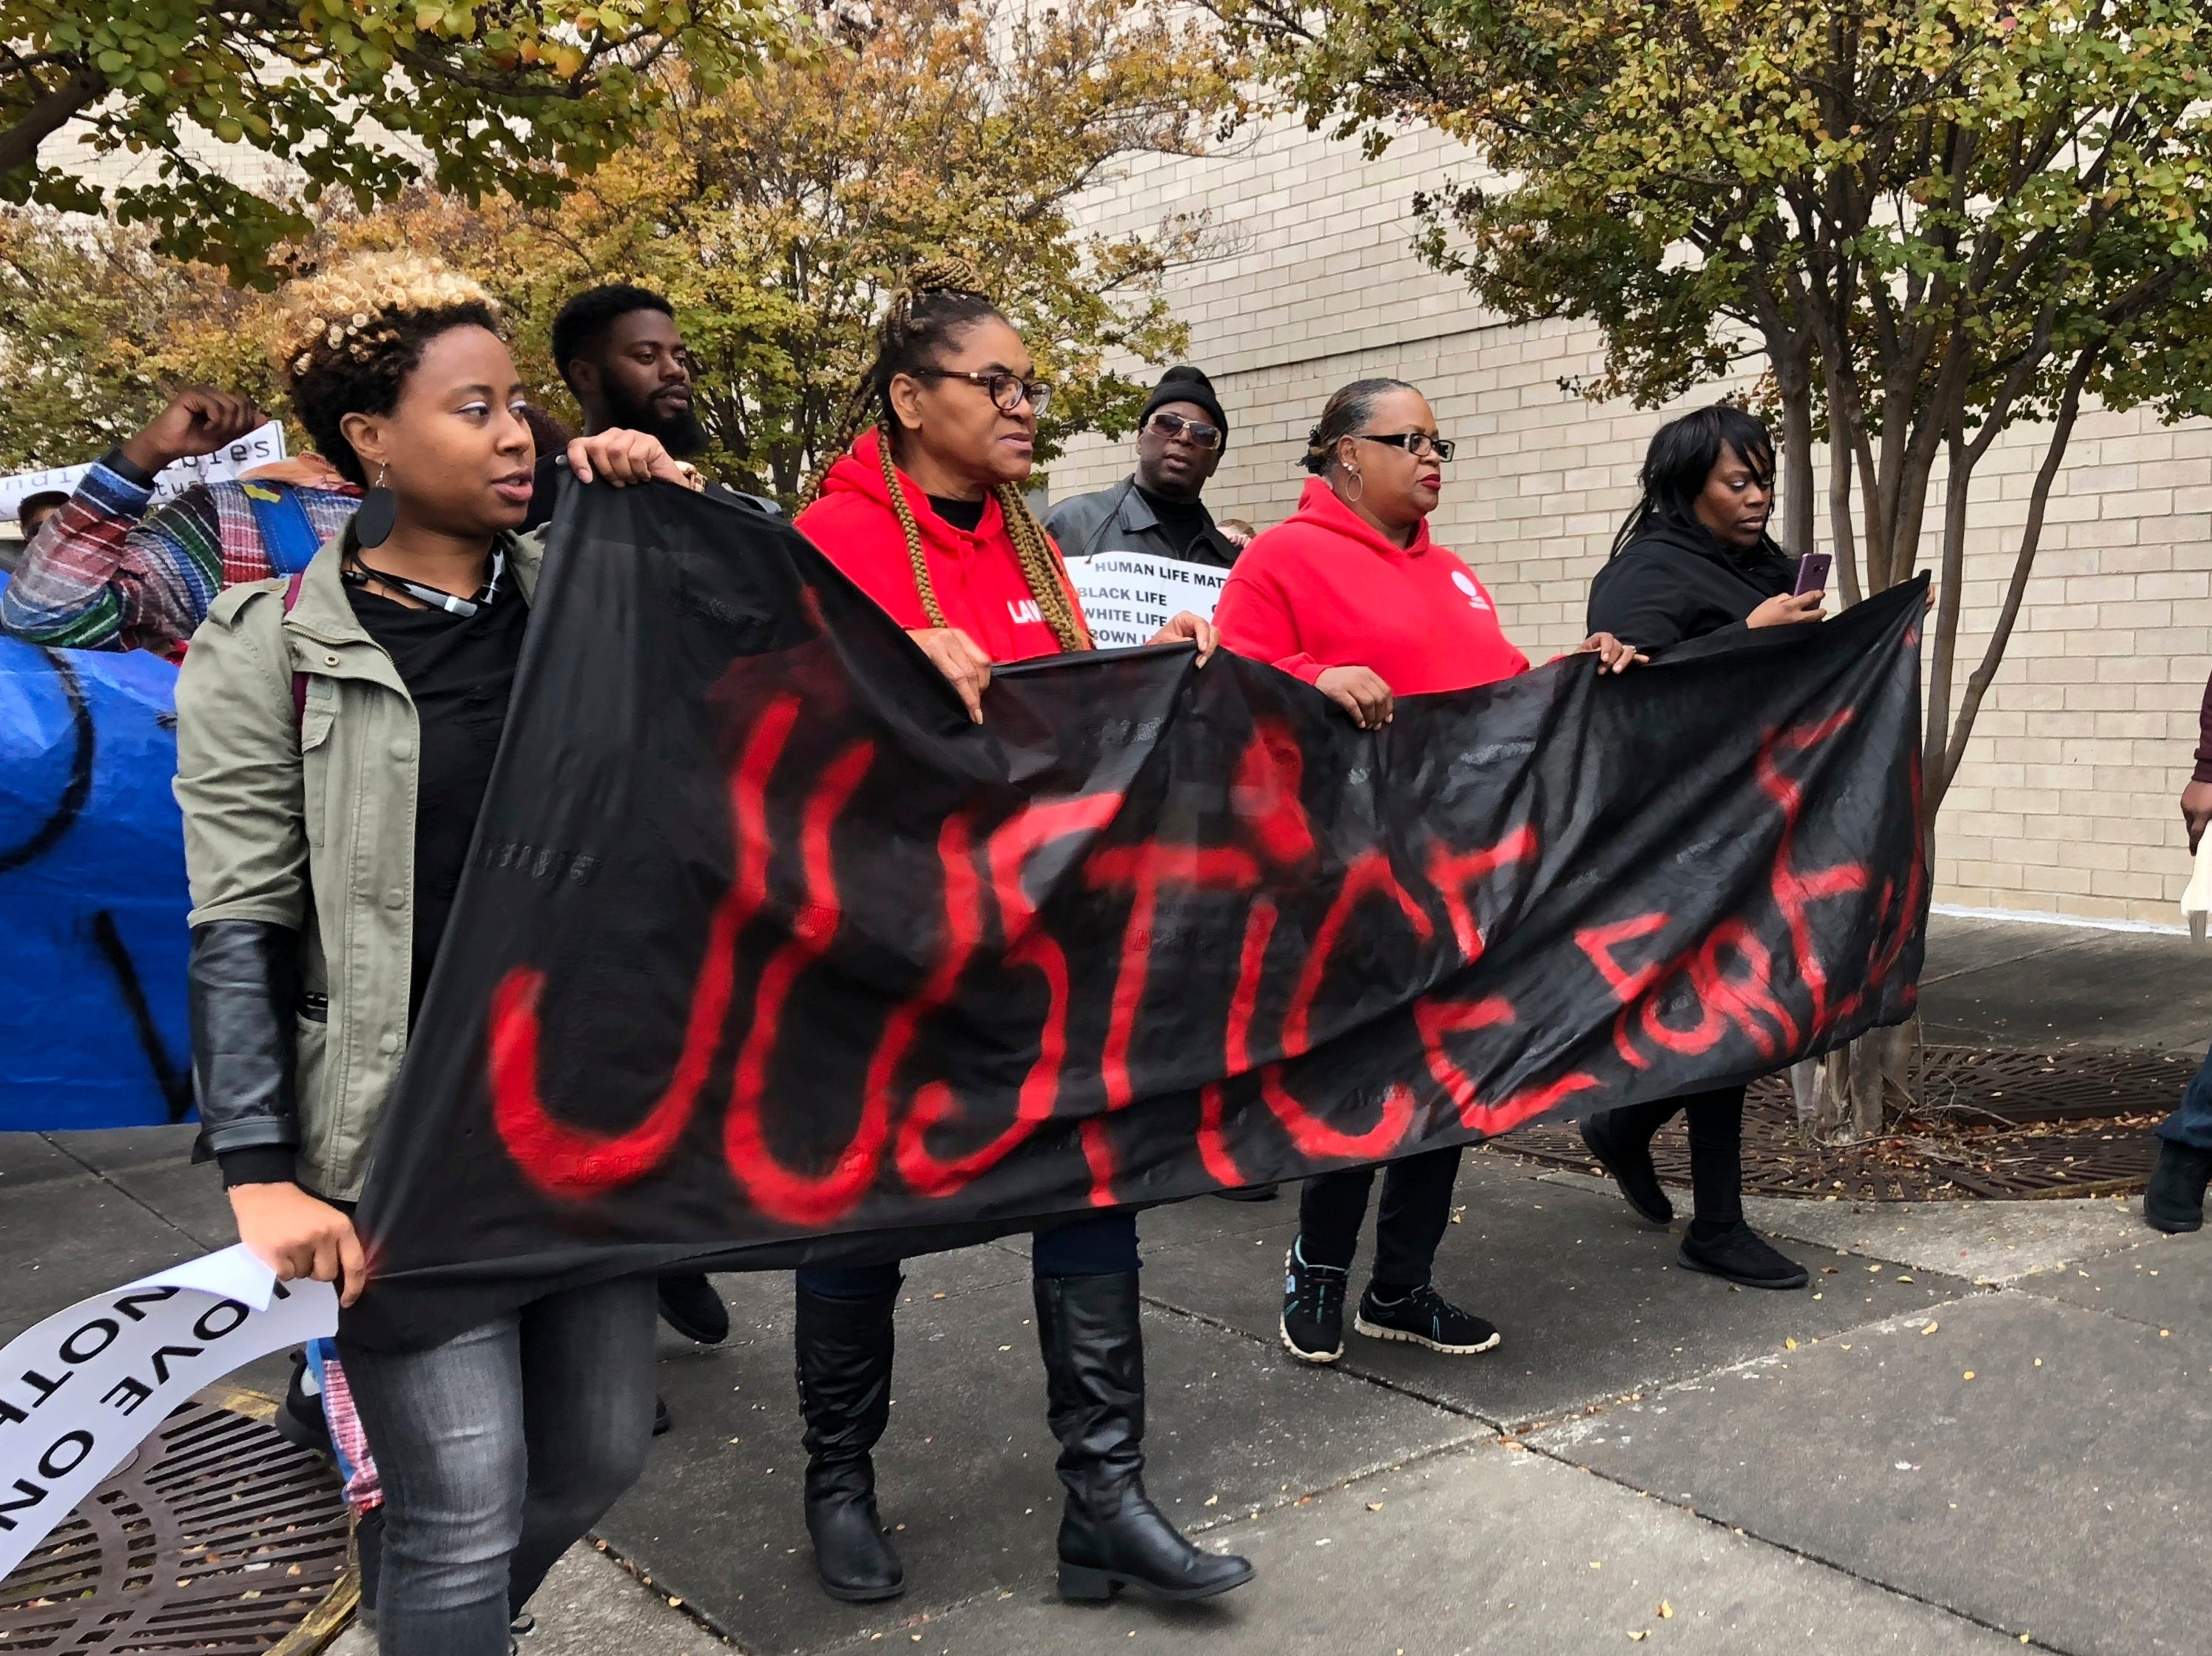 """Protestors carry a sign reading """"Justice for E.J."""" during a protest at the Riverchase Galleria in Hoover, Ala., Saturday, Nov. 24, 2018. A police shot and killed 21-year-old Emantic Fitzgerald Bradford, Jr. of Hueytown while responding to a shooting at the mall on Thanksgiving evening. Police said Bradford was fleeing the scene with a weapon. Hoover police initially told reporters Bradford had shot a teen at the mall, but later retracted the statement. (AP Photo/Kim Chandler)"""